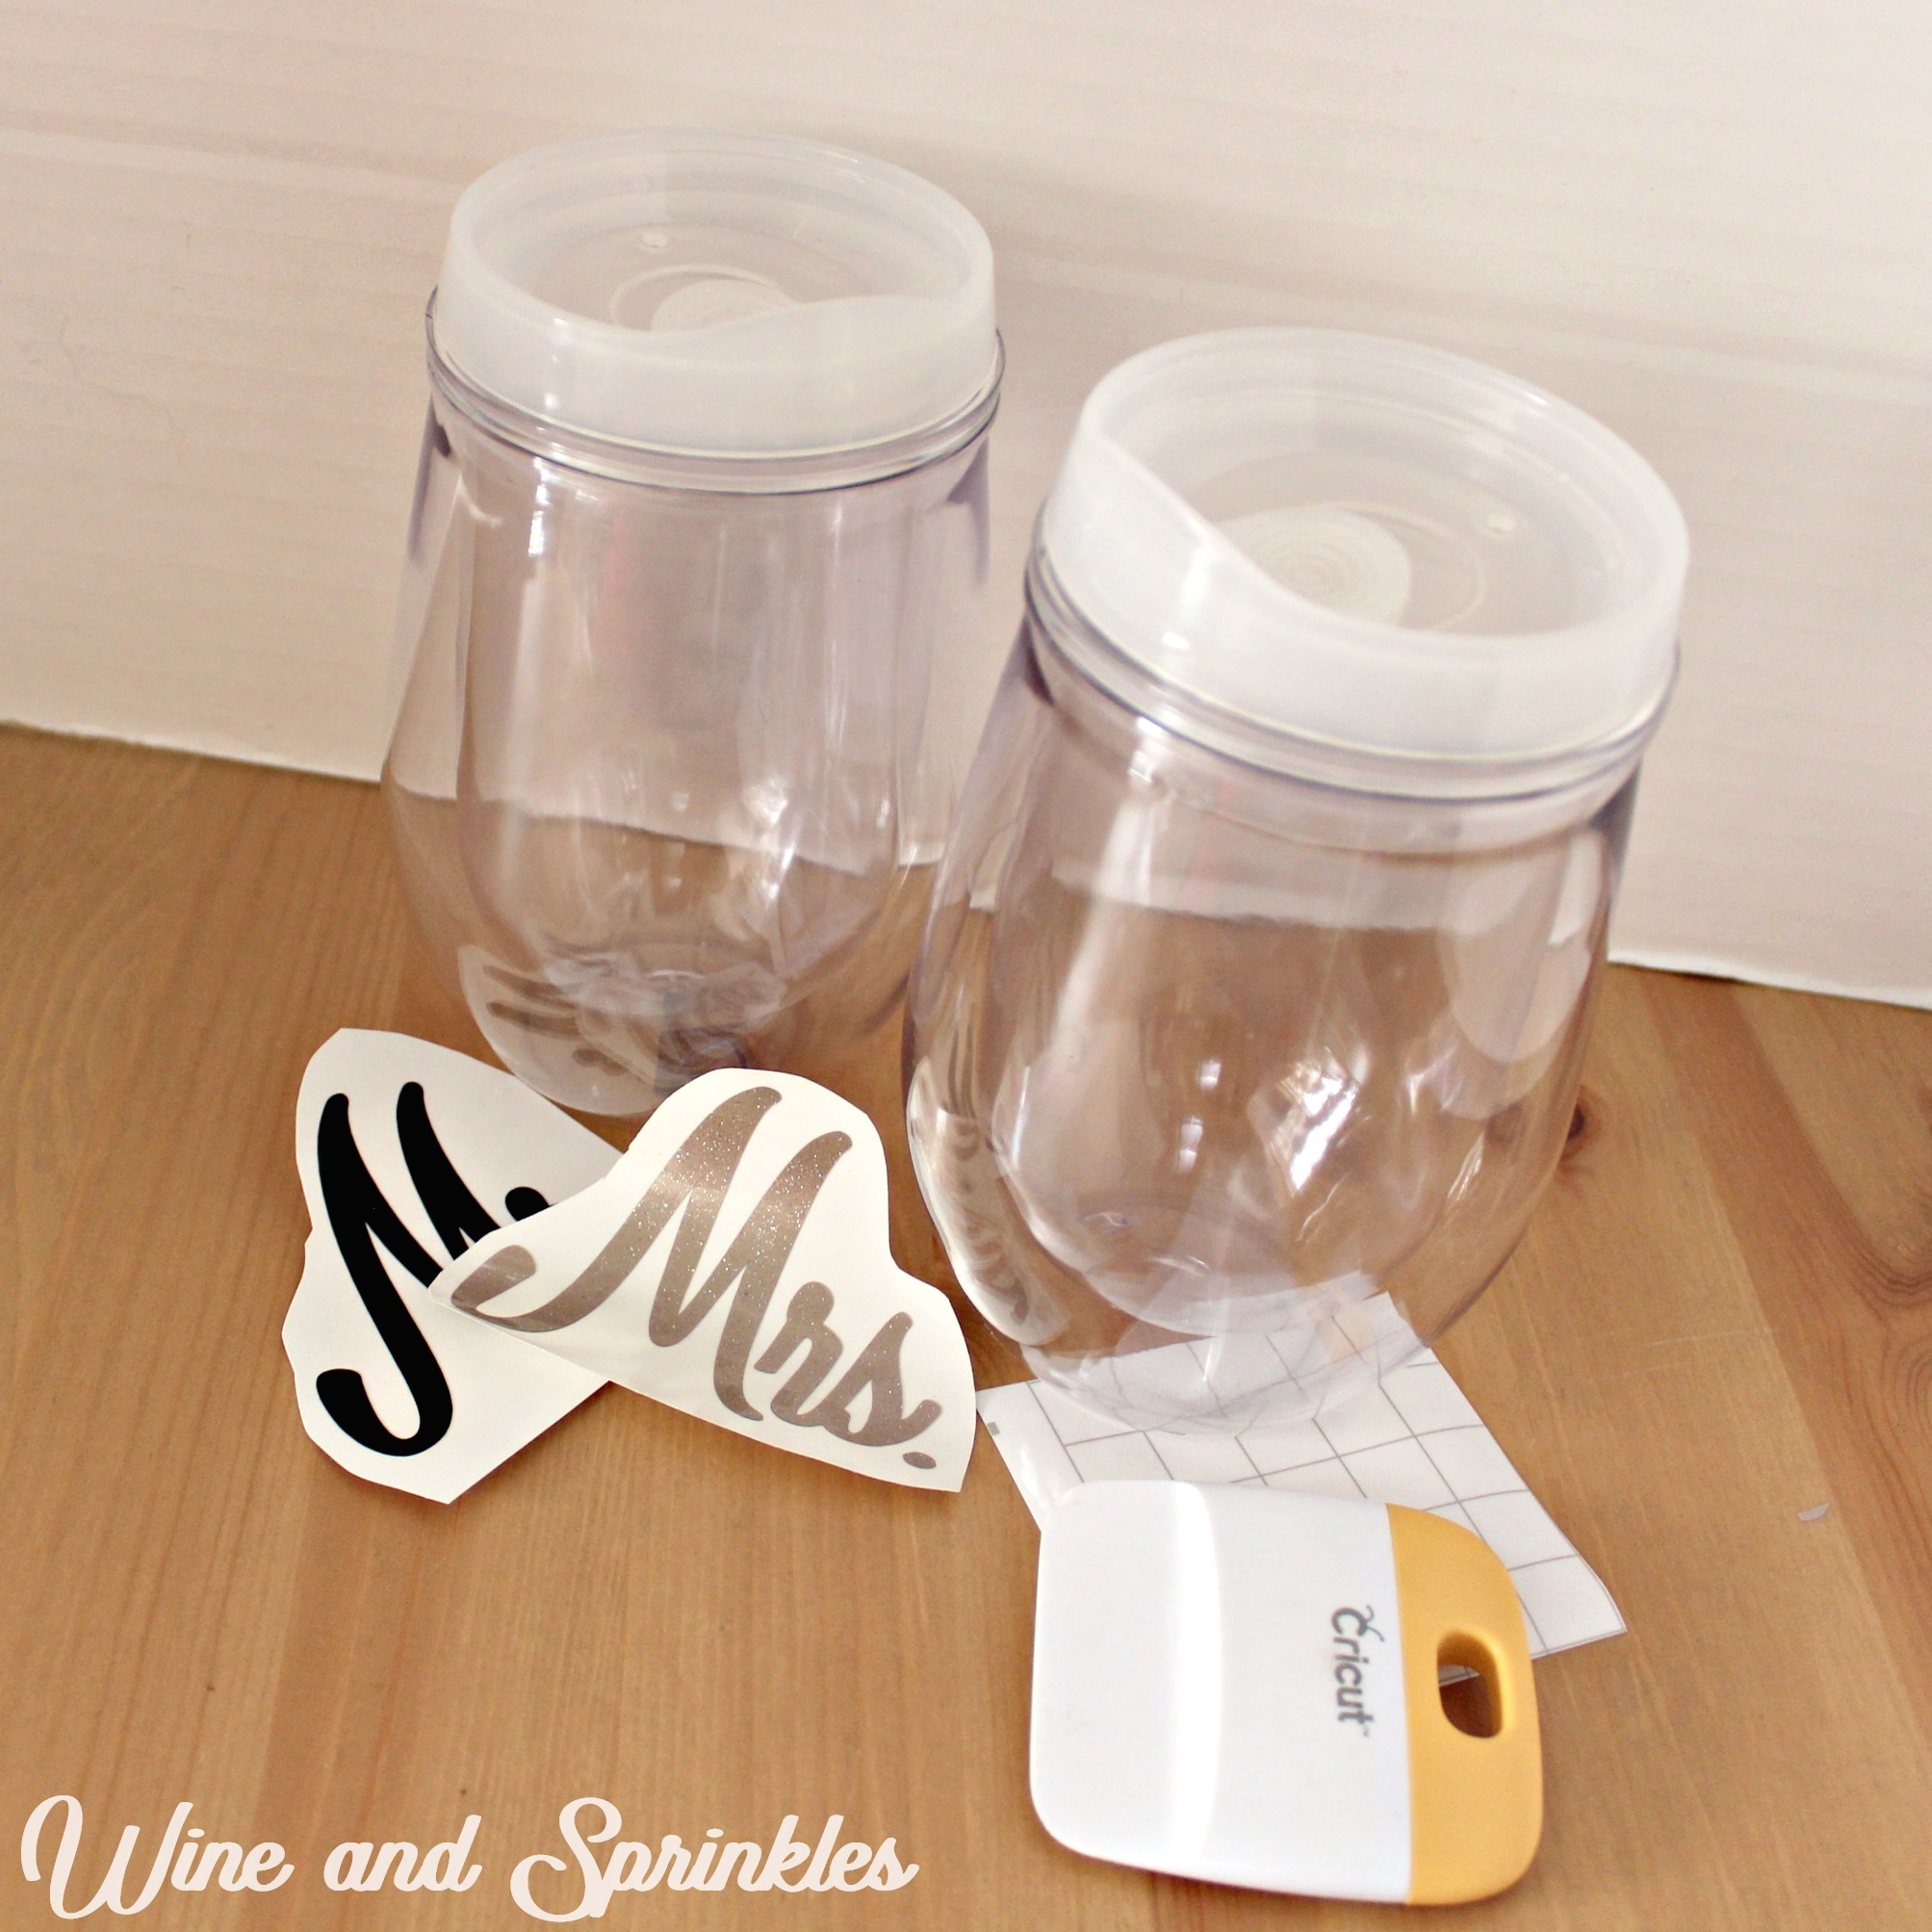 Do It Yourself Vinyl Mr and Mrs Stemless wine tumblers #svgfiles #cricutprojects #beachbride